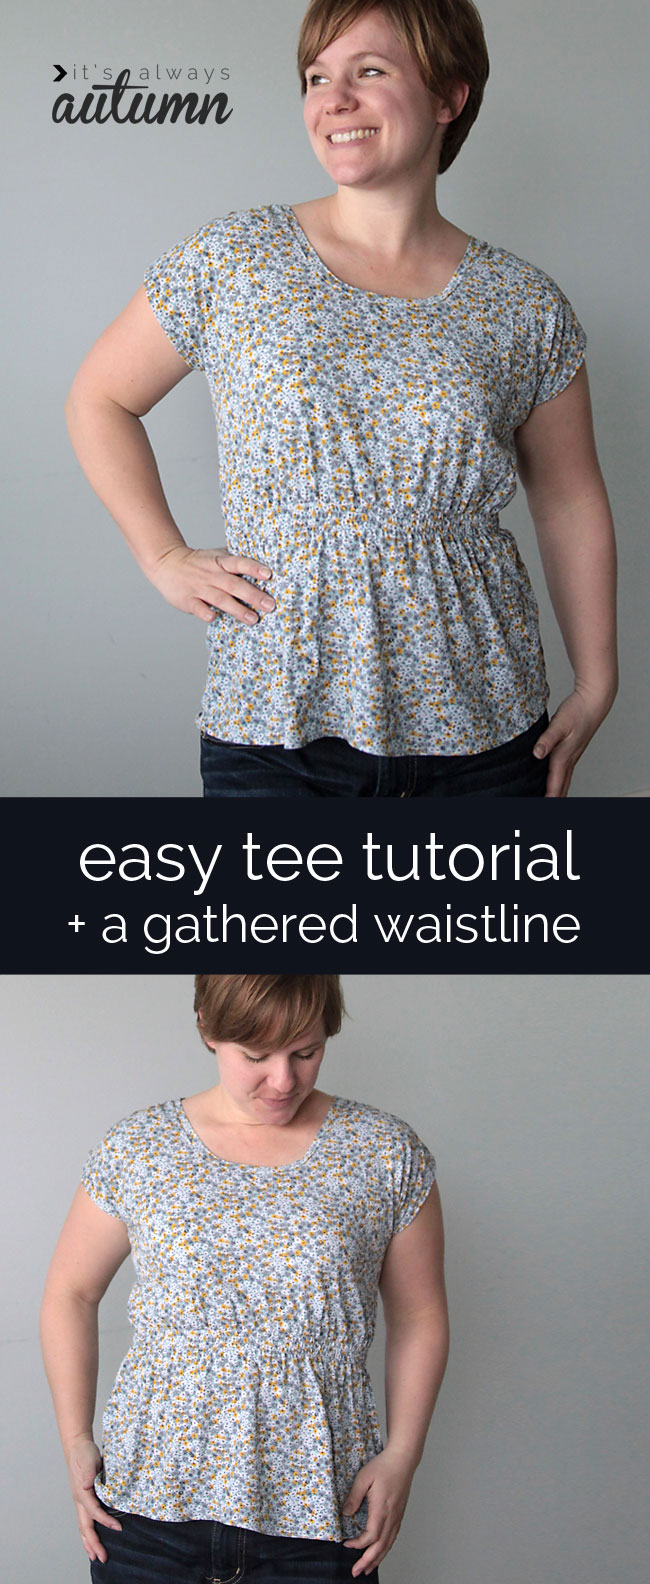 easy-tee-gathered-waist-sewing-directions-instructions-how-to-sew-womens-top